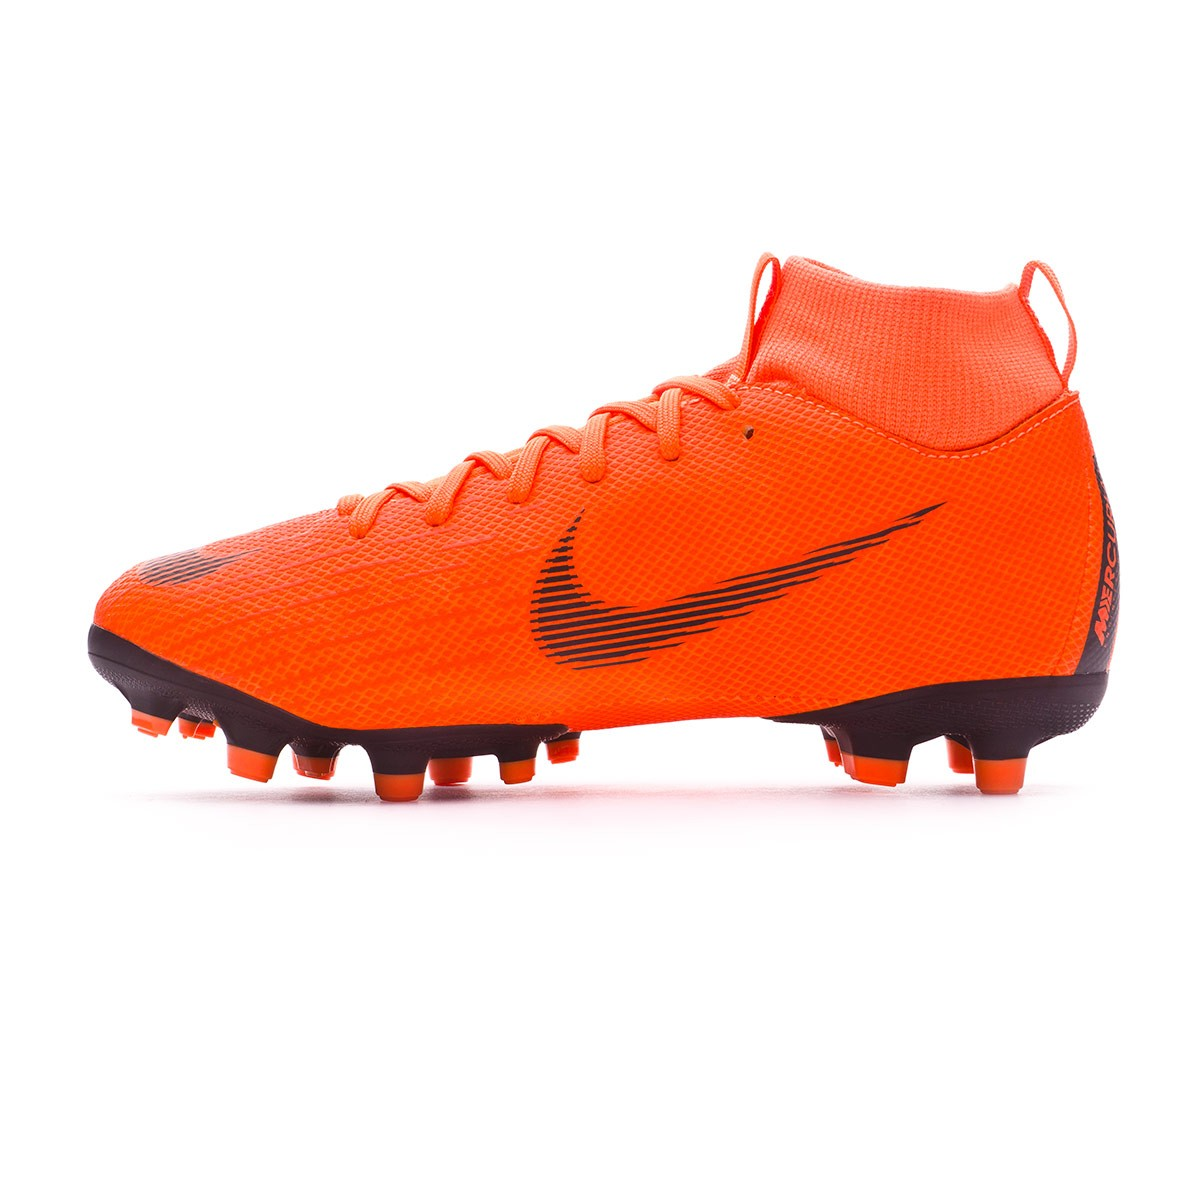 timeless design 3dfa5 da930 Boot Nike Kids Mercurial Superfly VI Academy GS MG Total orange-Black-Volt  - Football store Fútbol Emotion